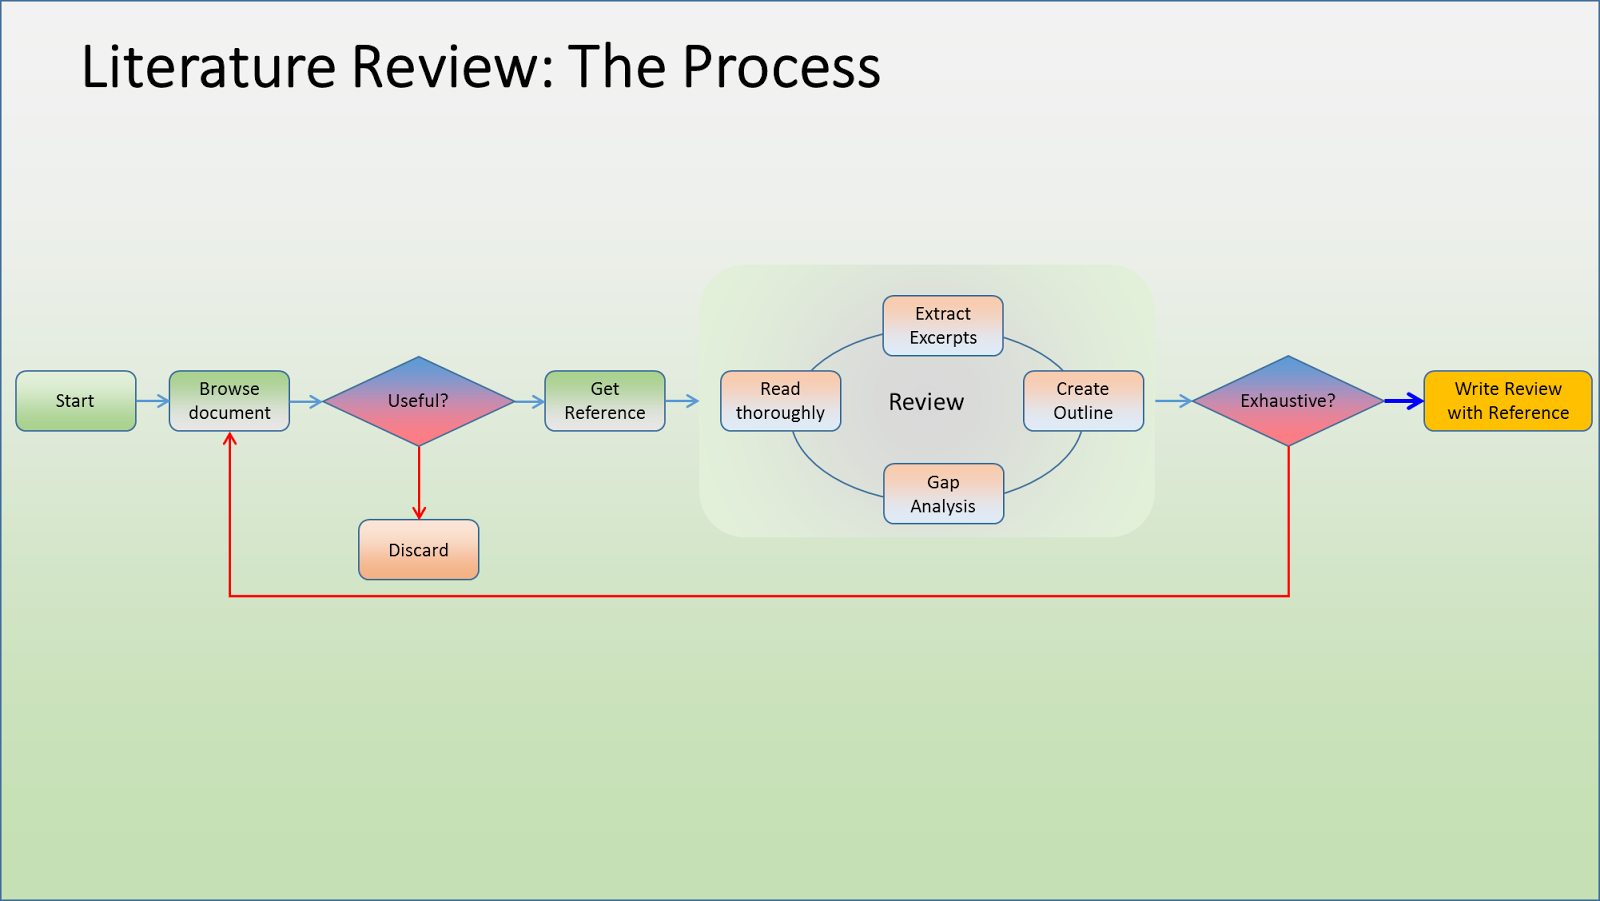 Figure    A hermeneutic framework for the literature review process consisting of two major hermeneutic